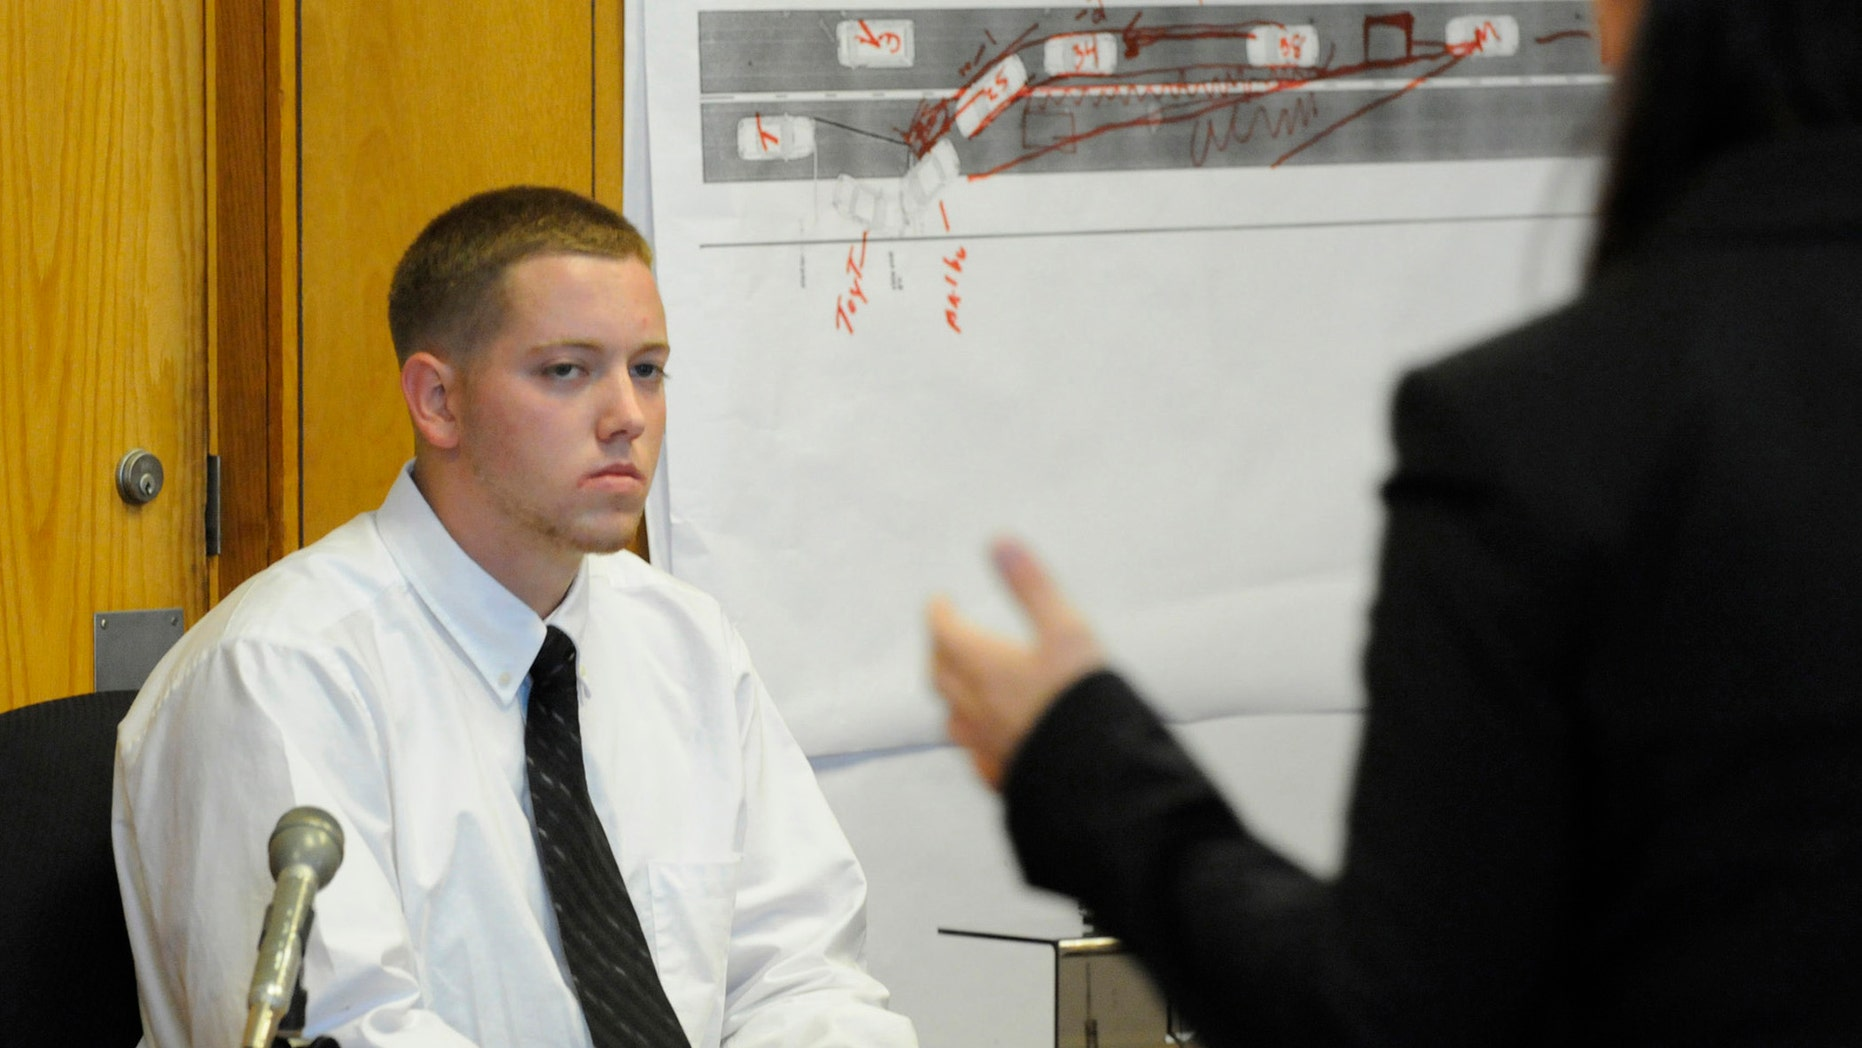 June 5, 2012: Defendant Aaron Deveau, 18, listens to assistant district attorney Ashlee Logan while testifying at Haverhill District Court in Haverhill, Mass.